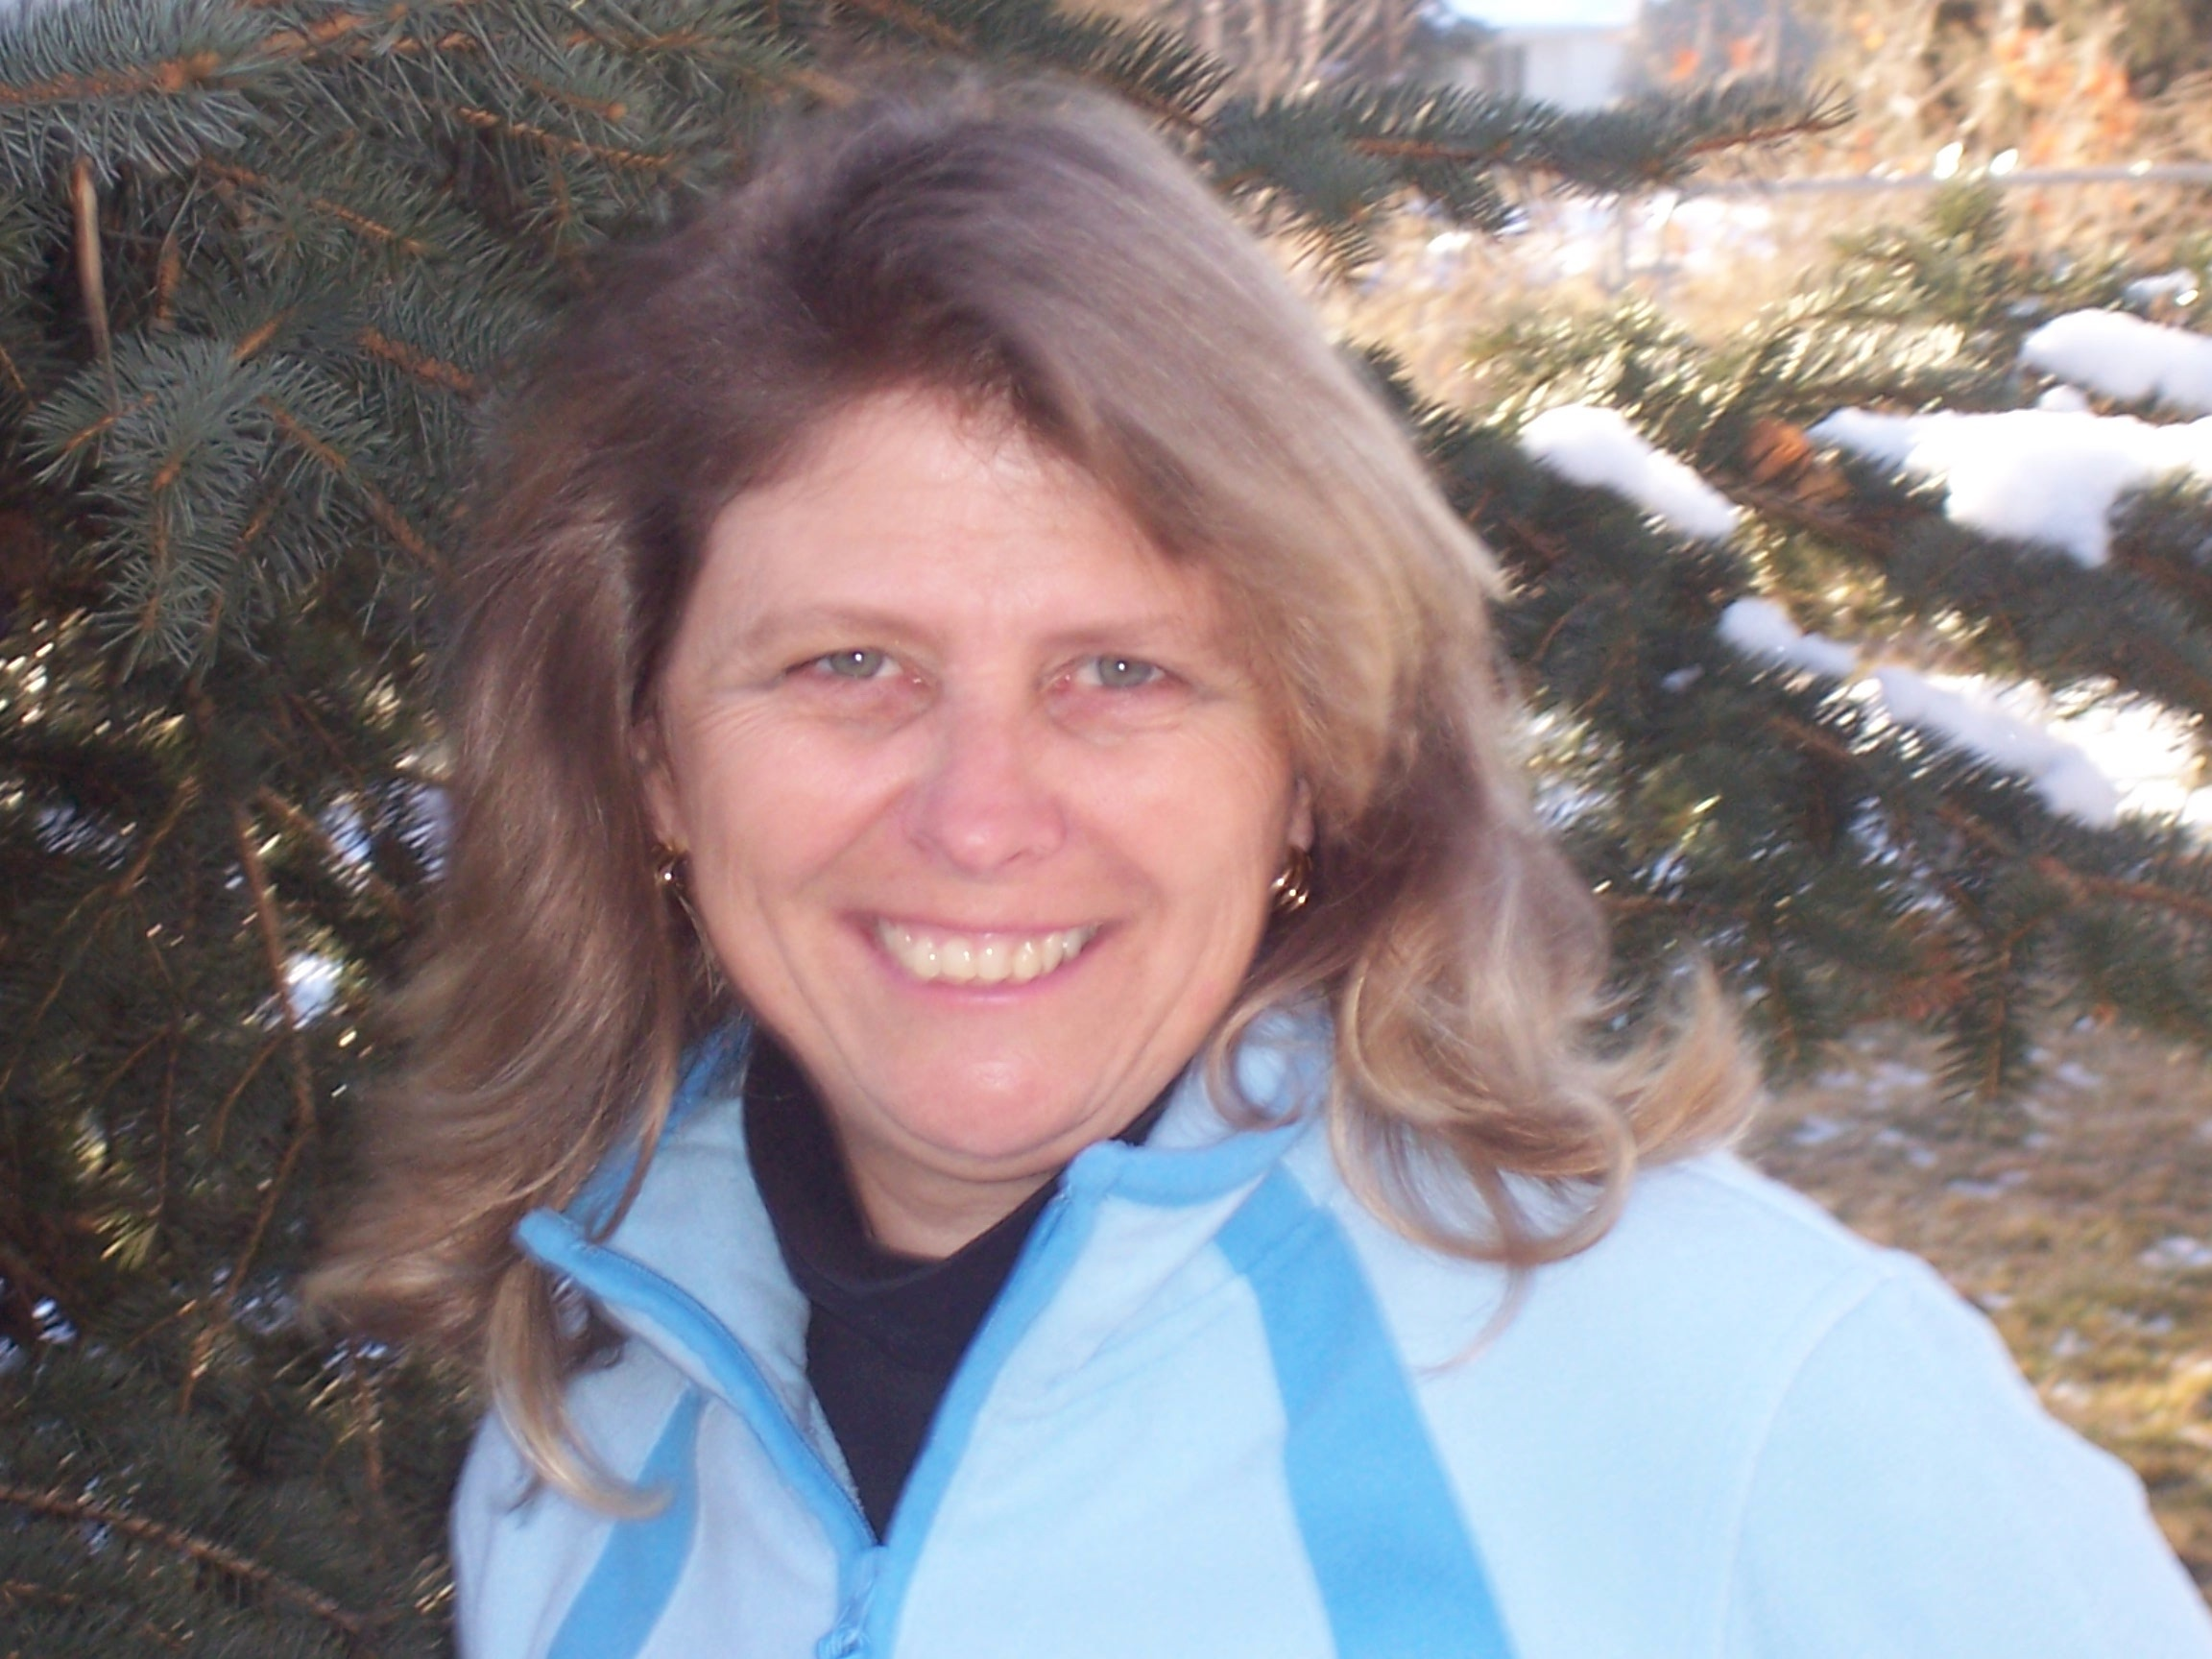 Sue Kenney, Education and Outreach Coordinator with the Natural Areas Department of the City of Fort Collins